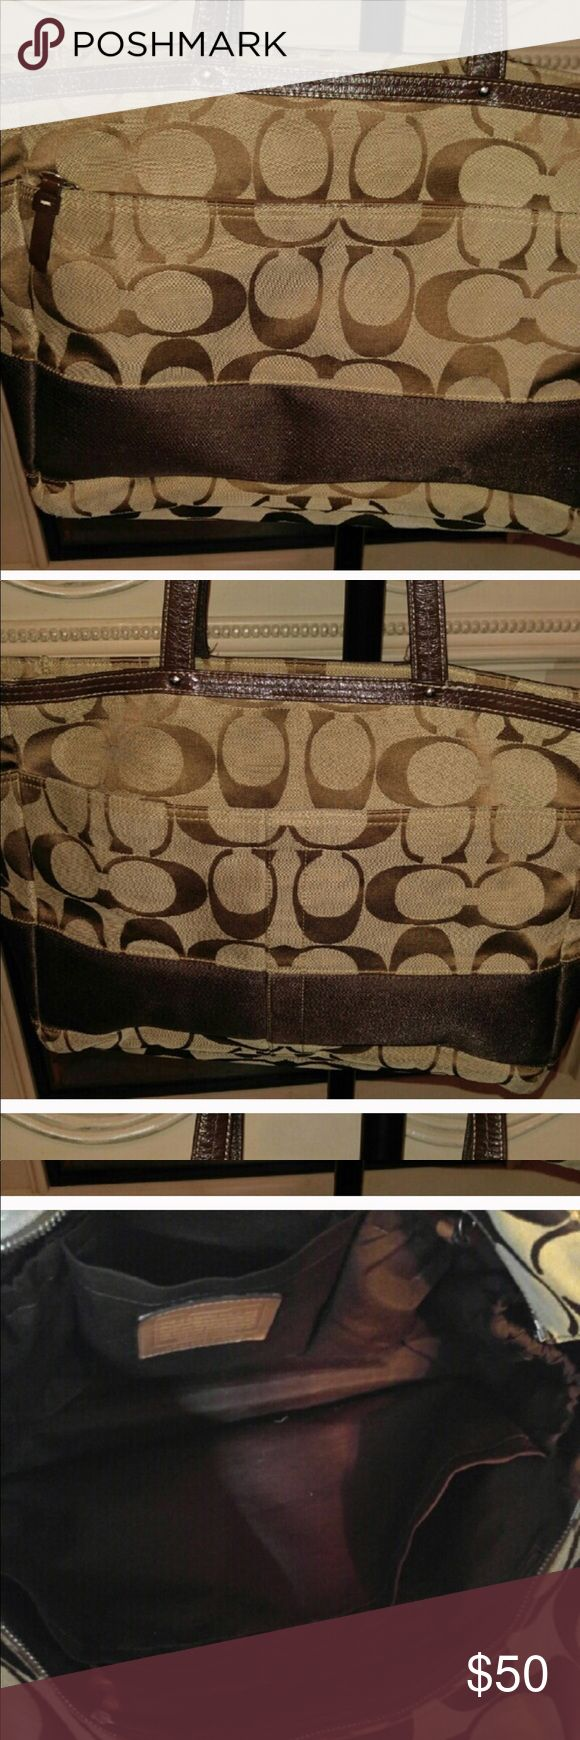 Large COACH TOTE This purse can hold everything and has several compartments.  Good condition Coach Bags